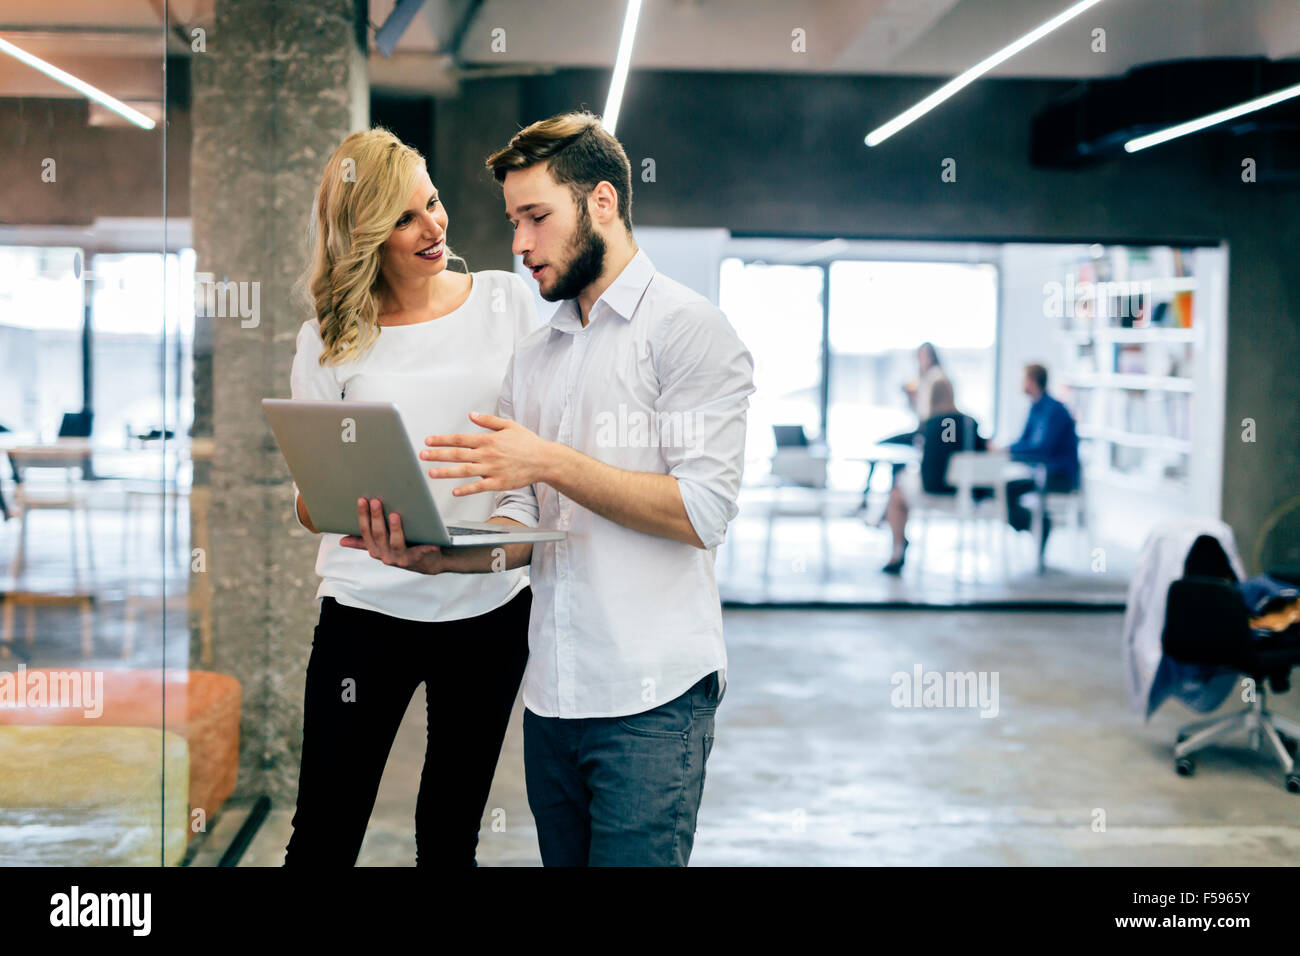 Business coworkers discussing new ideas and brainstorming in a modern office - Stock Image